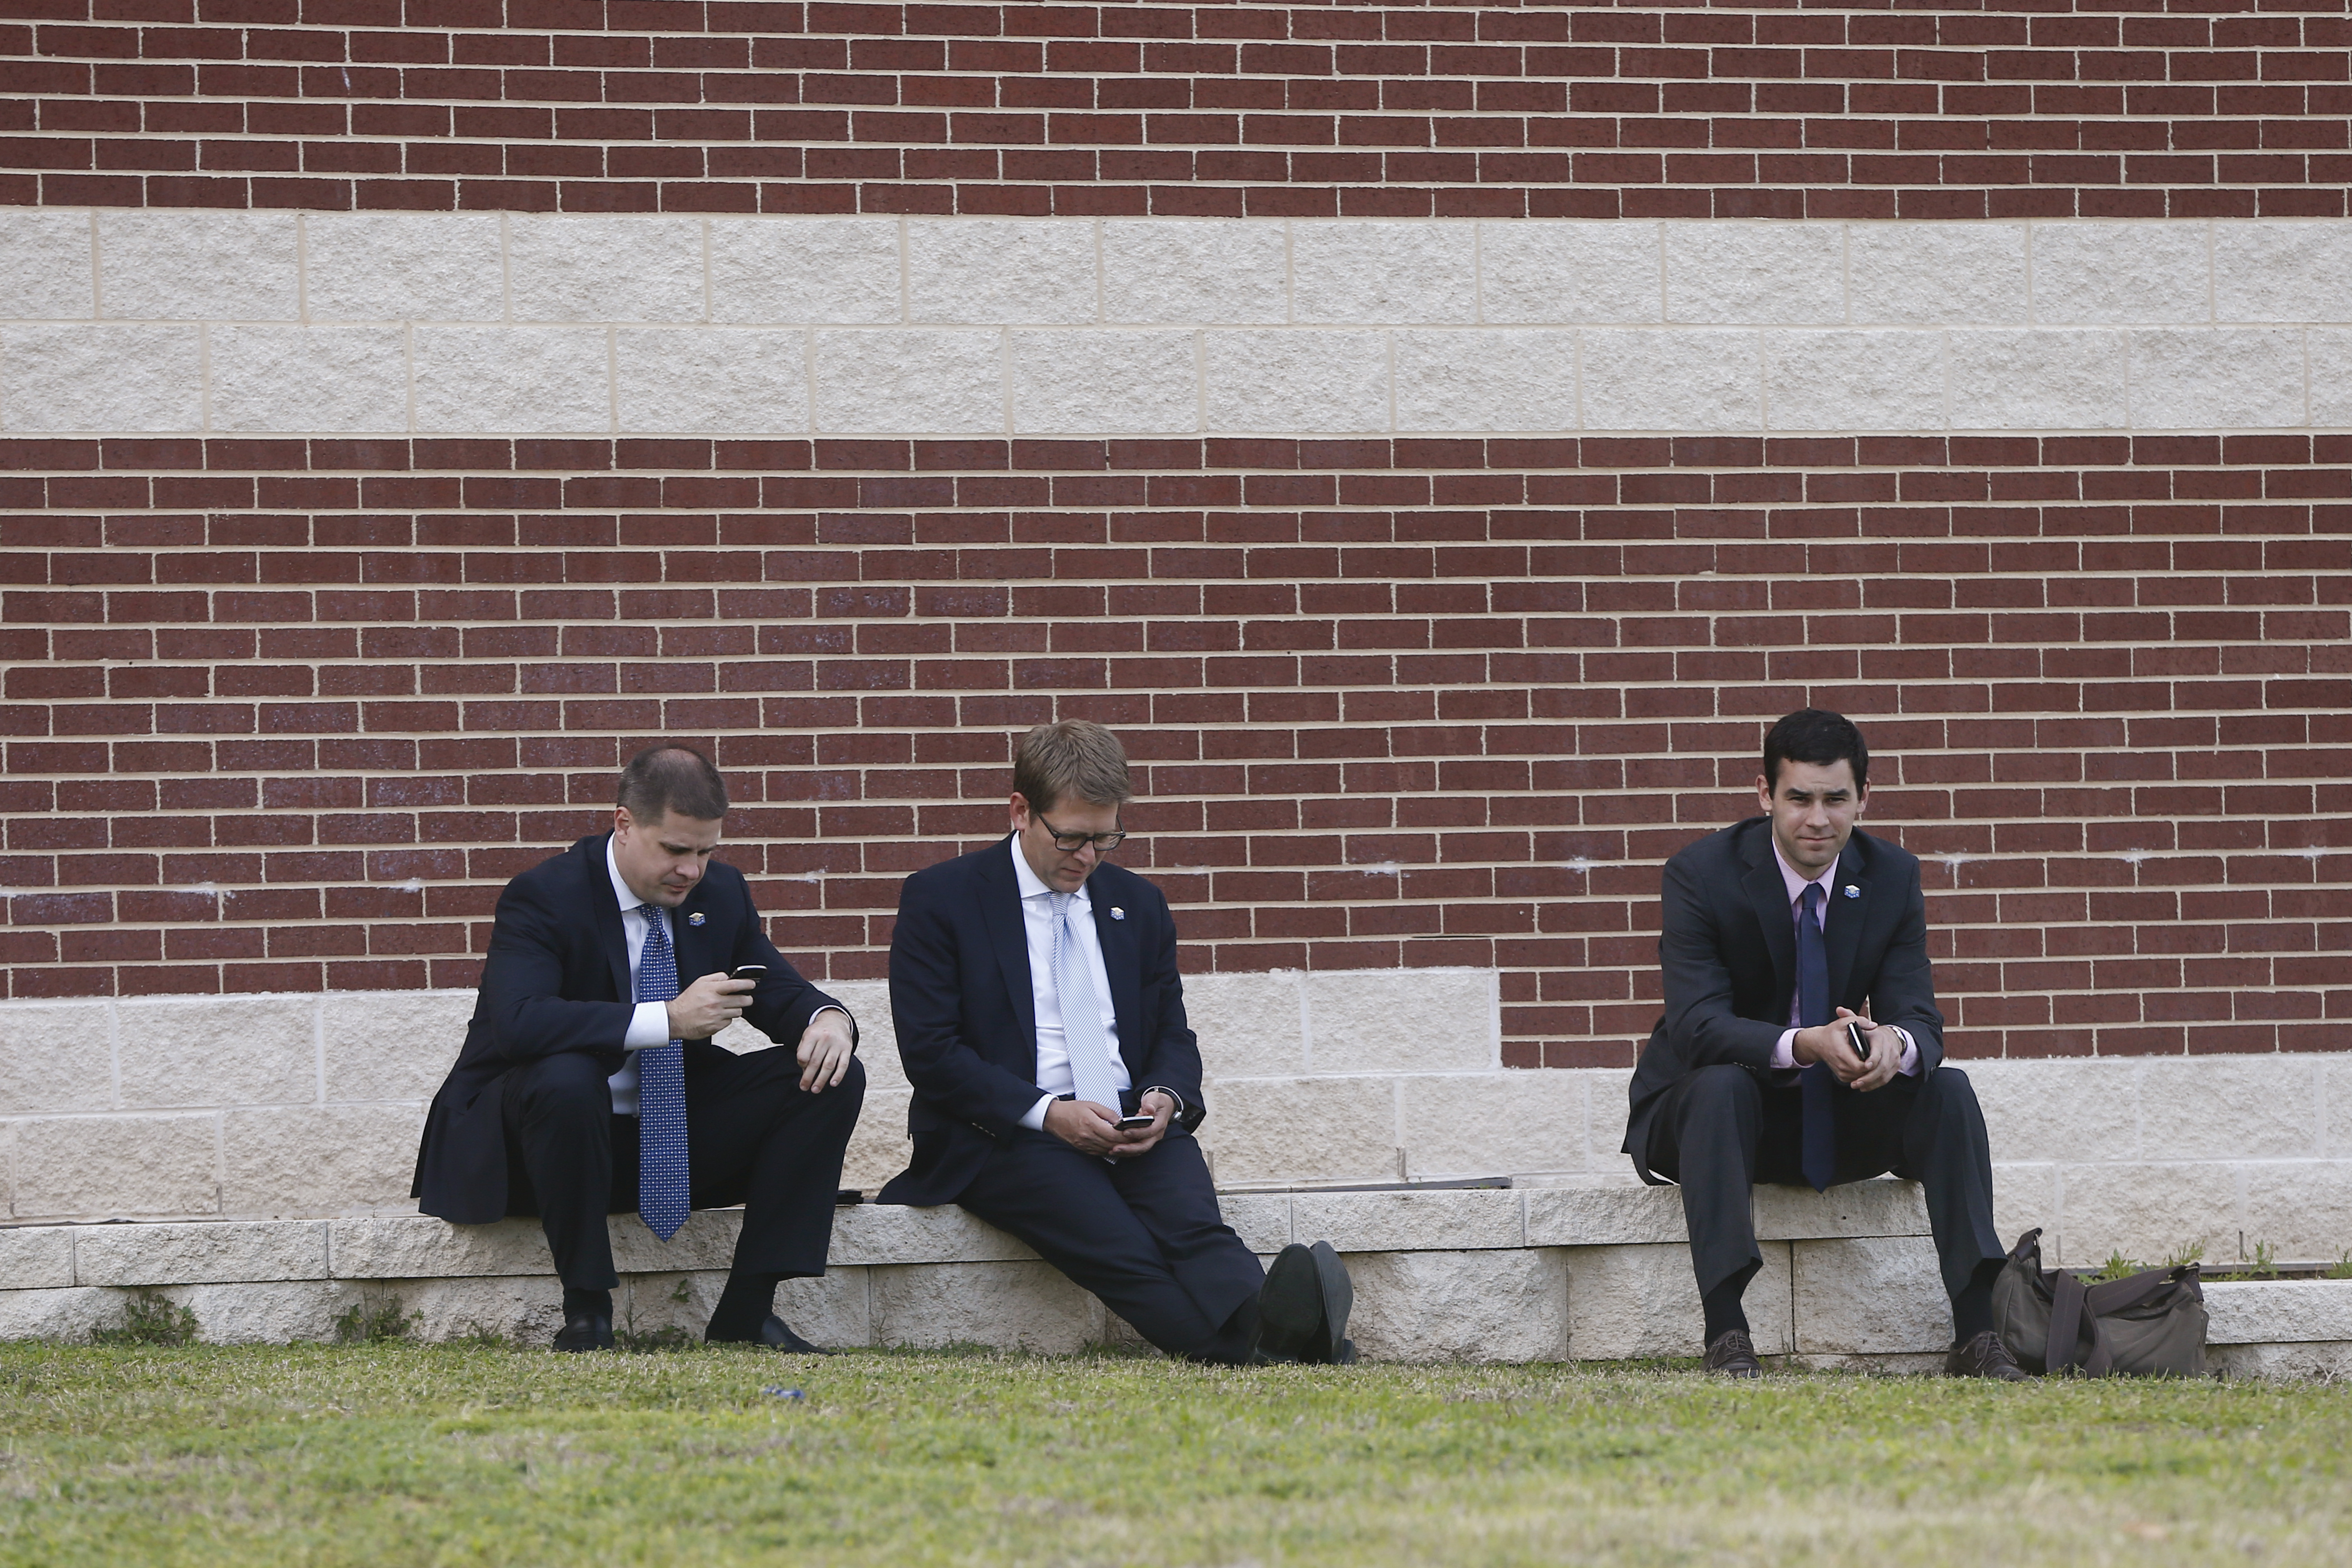 White House Press Secretary Jay Carney, center, senior adviser Dan Pfeiffer, left, and speechwriter Kyle O'Connor wait outside as President Barack Obama and first lady Michelle Obama meet with families of firefighters killed in the West Texas, fertilizer plant explosion after a memorial at Baylor University in Waco,Texas on April 25, 2013.